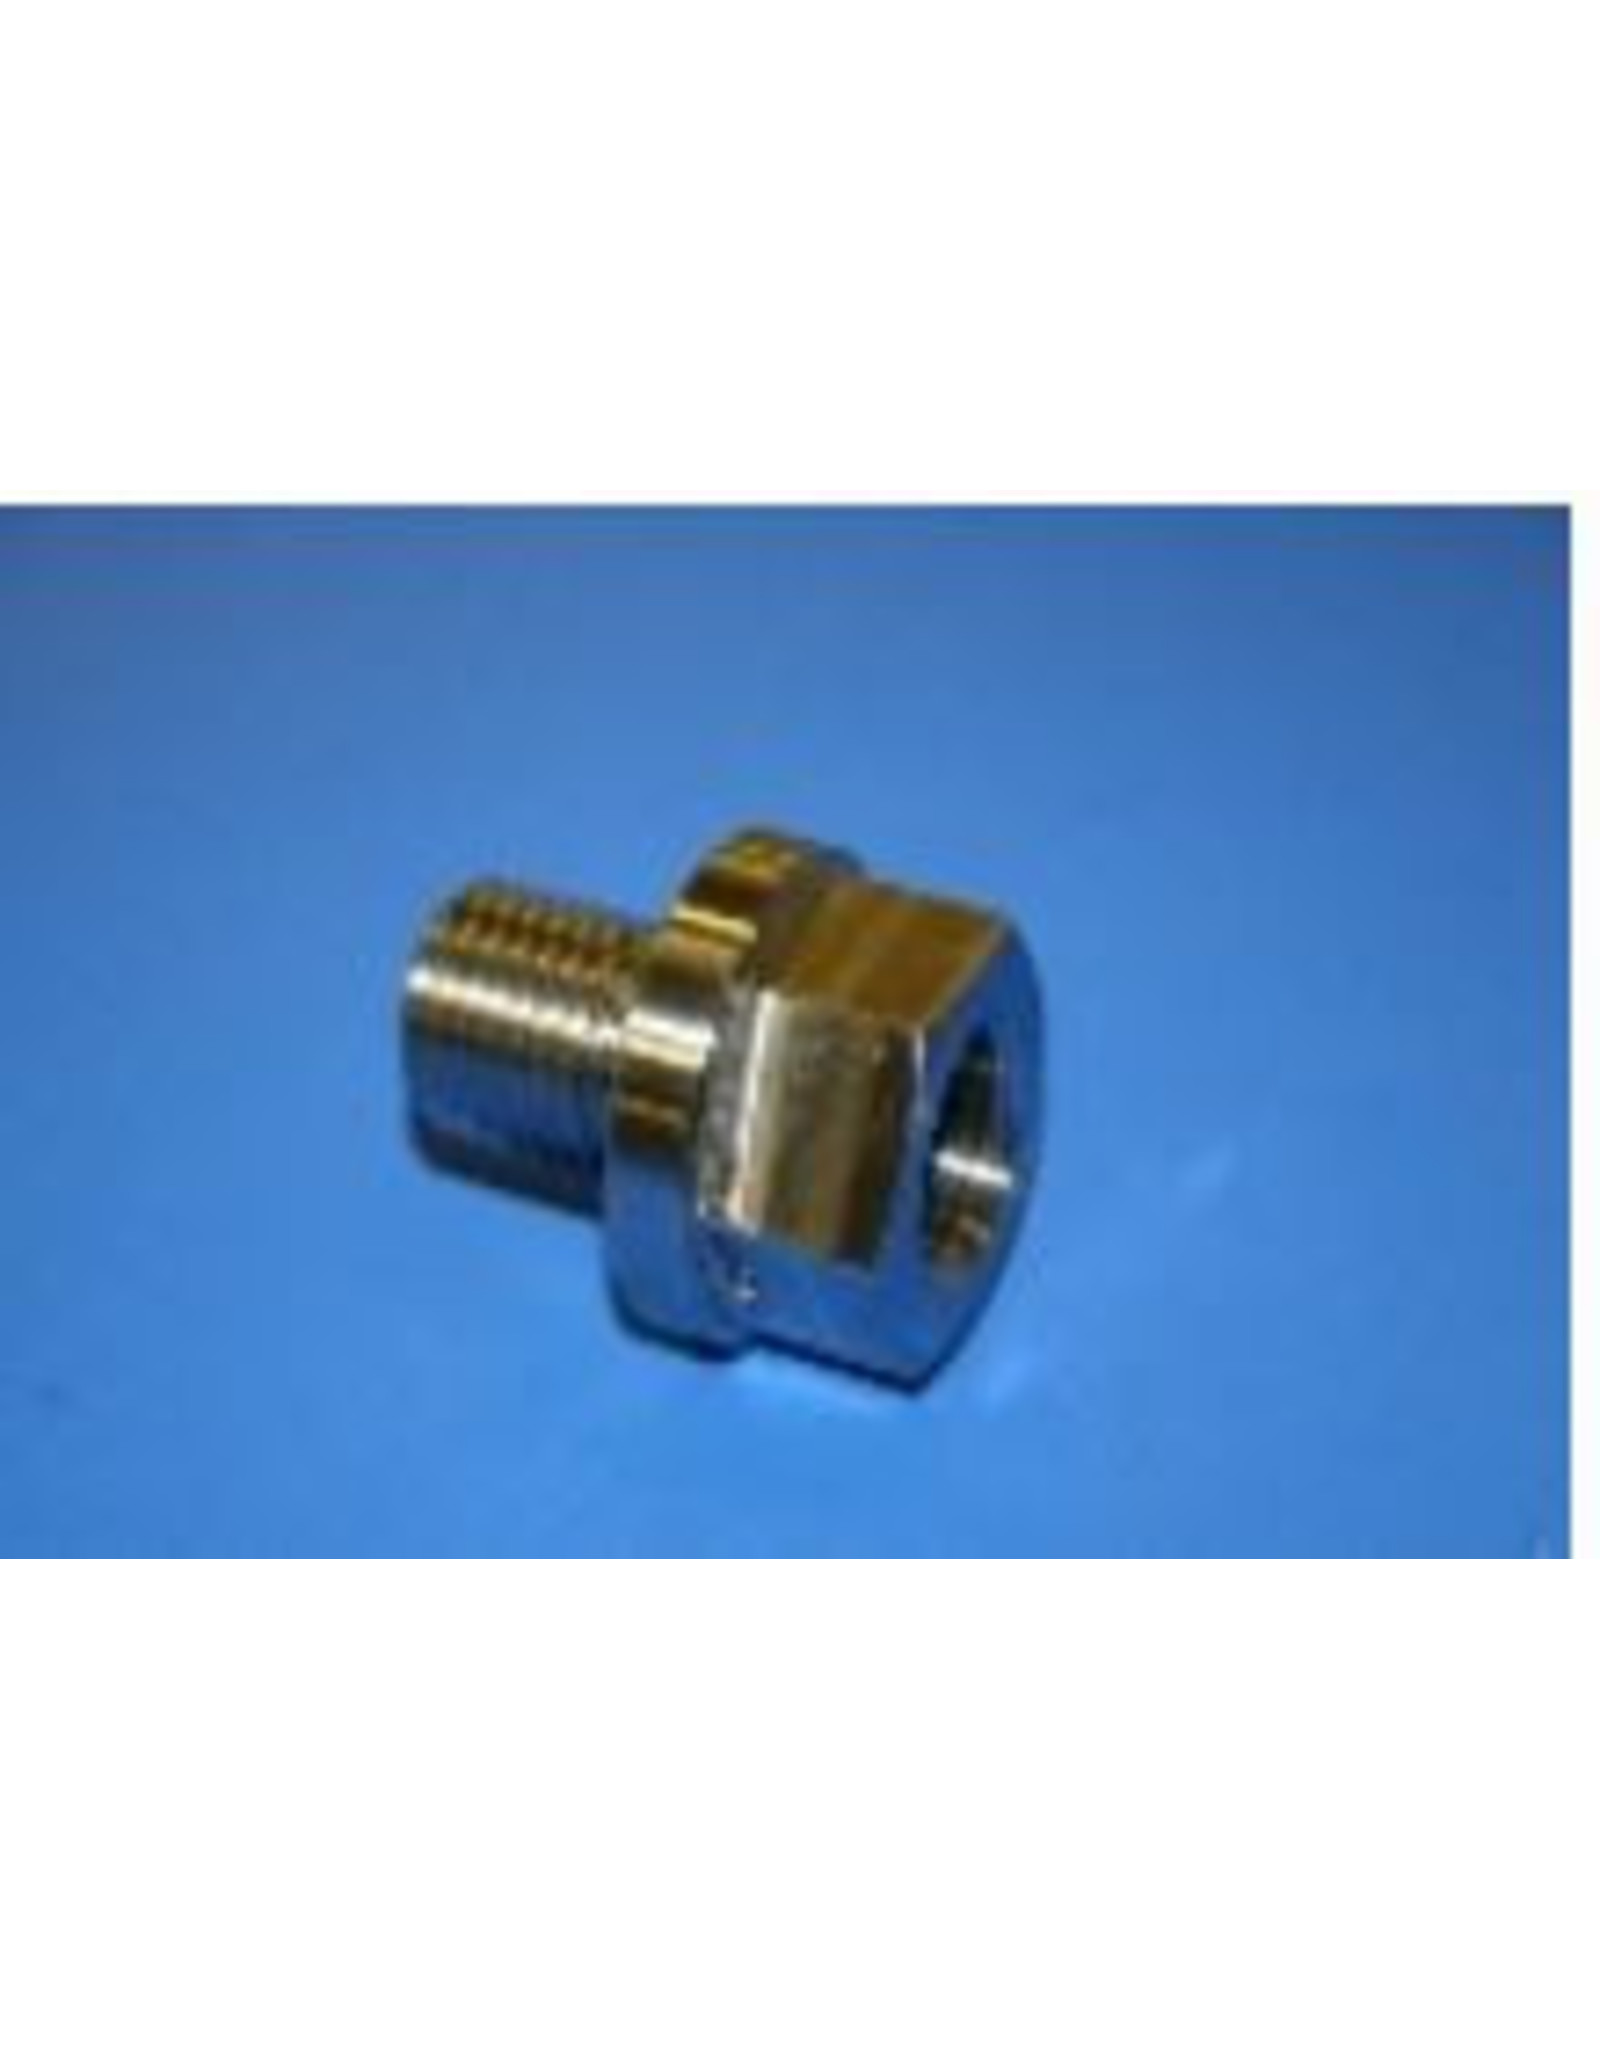 KMT Style Check Valve (Seal Head) Adapter